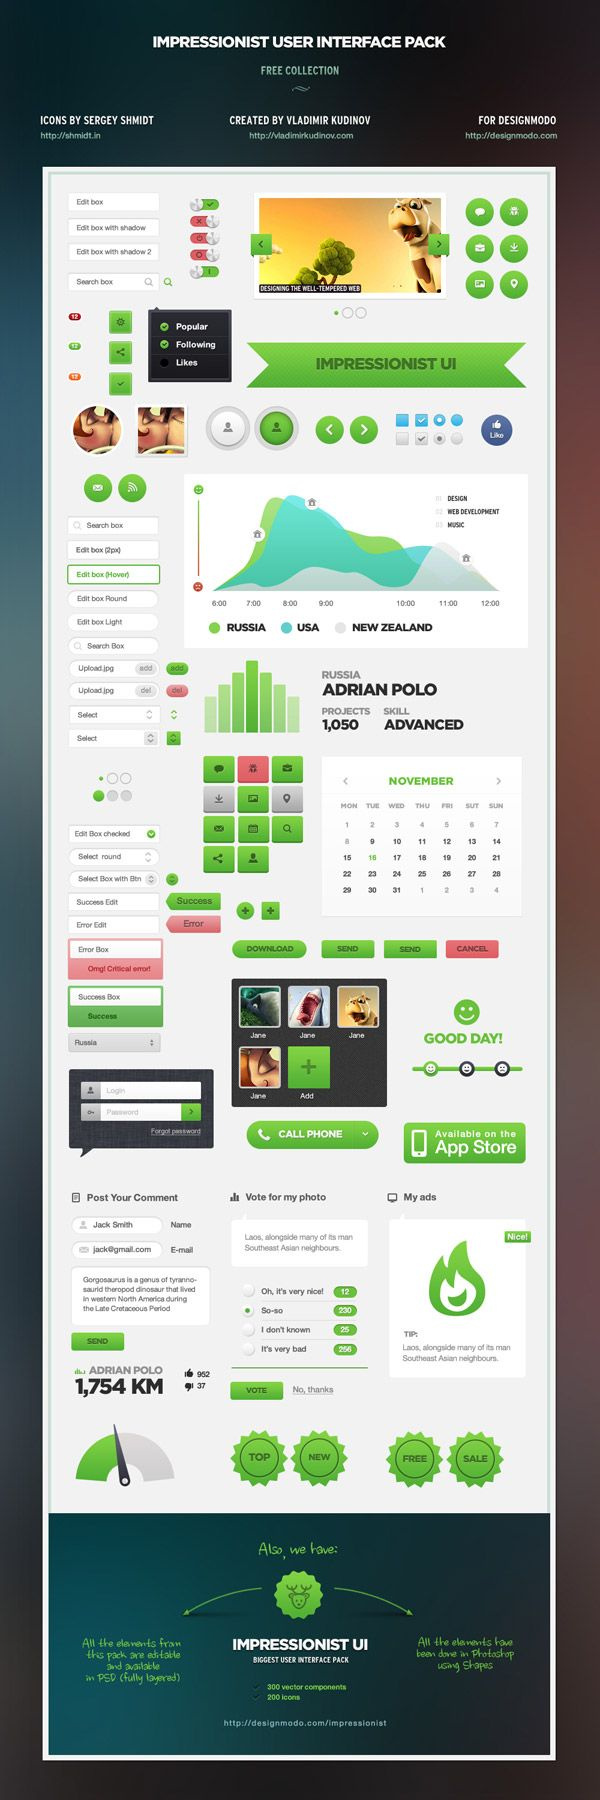 Impressionist UI Free – User Interface Pack